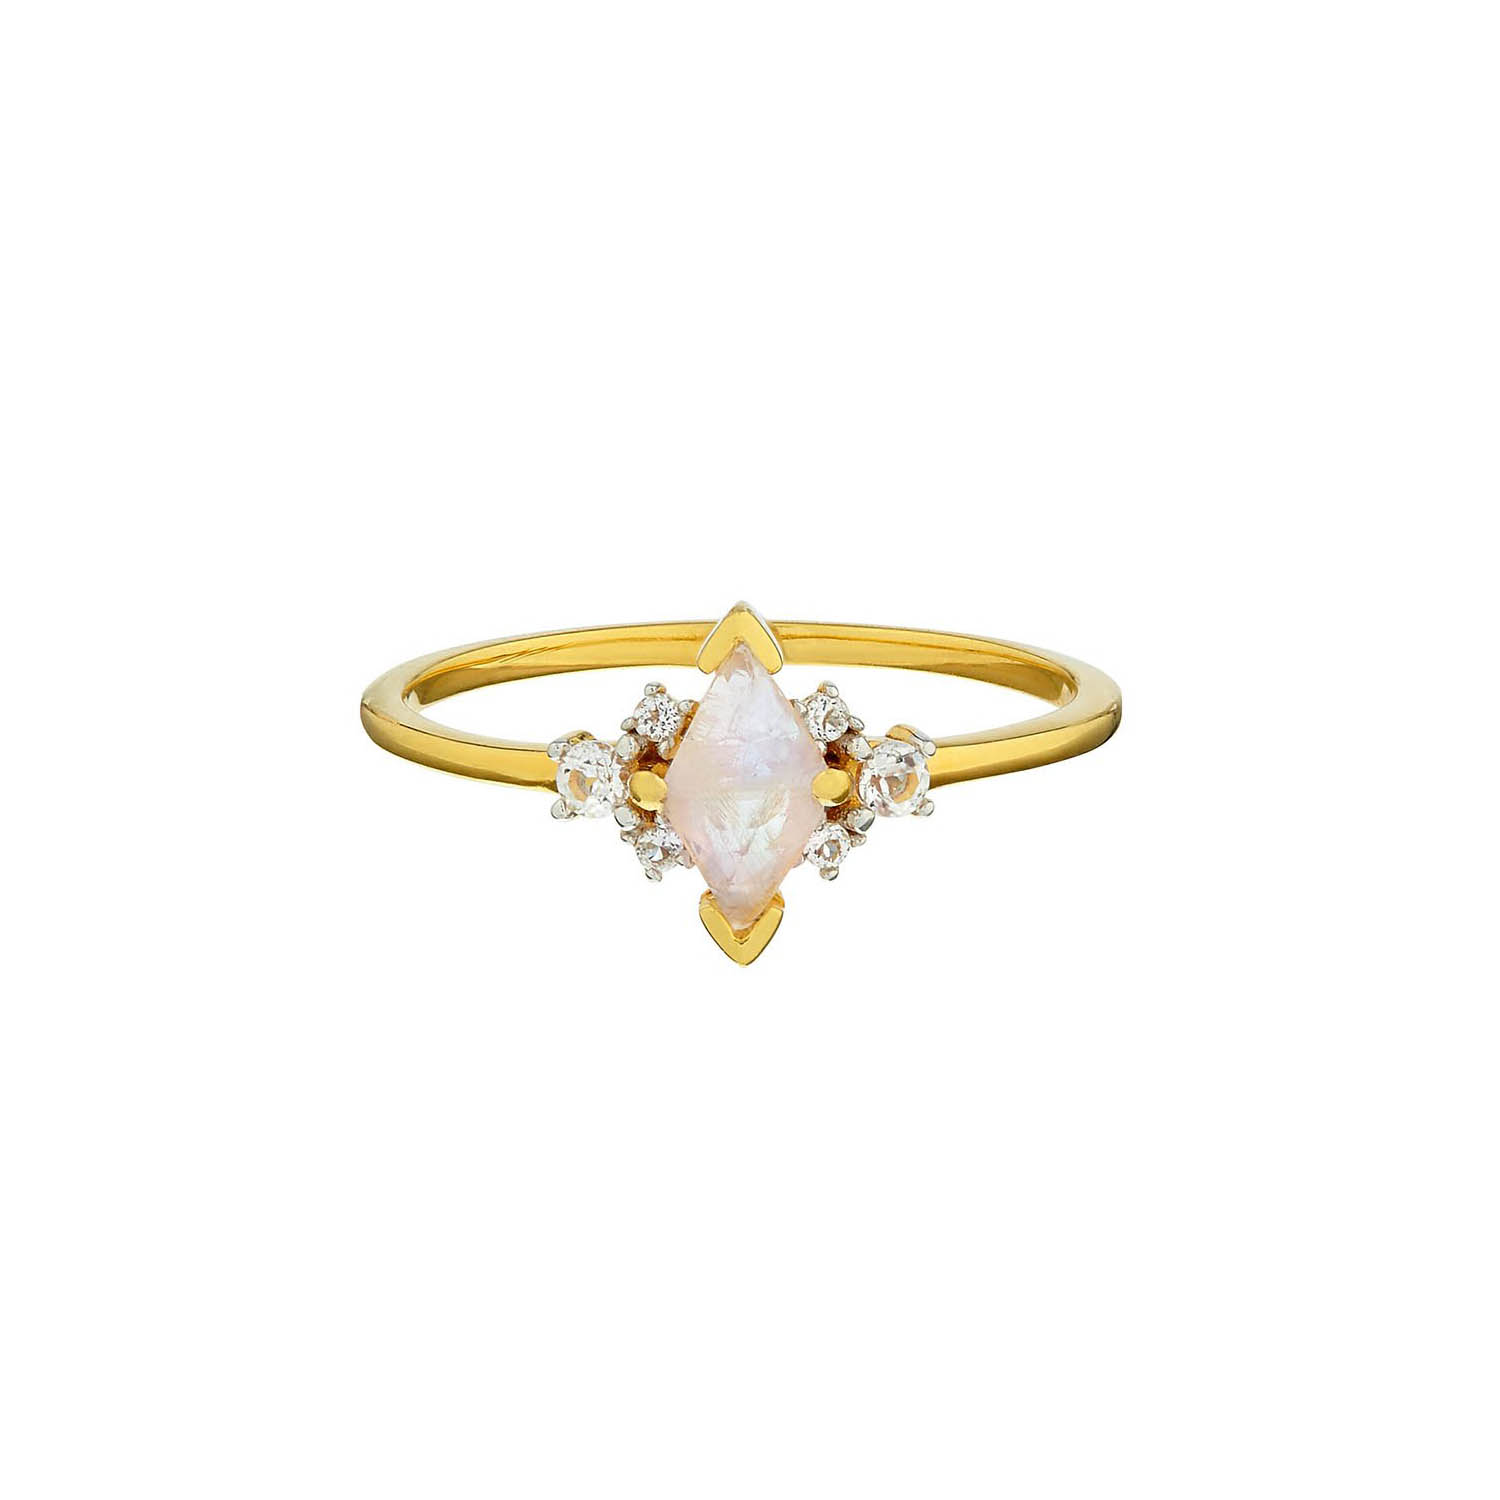 Moonstone Engagement Ring, Carrie Elizabeth Jewellery